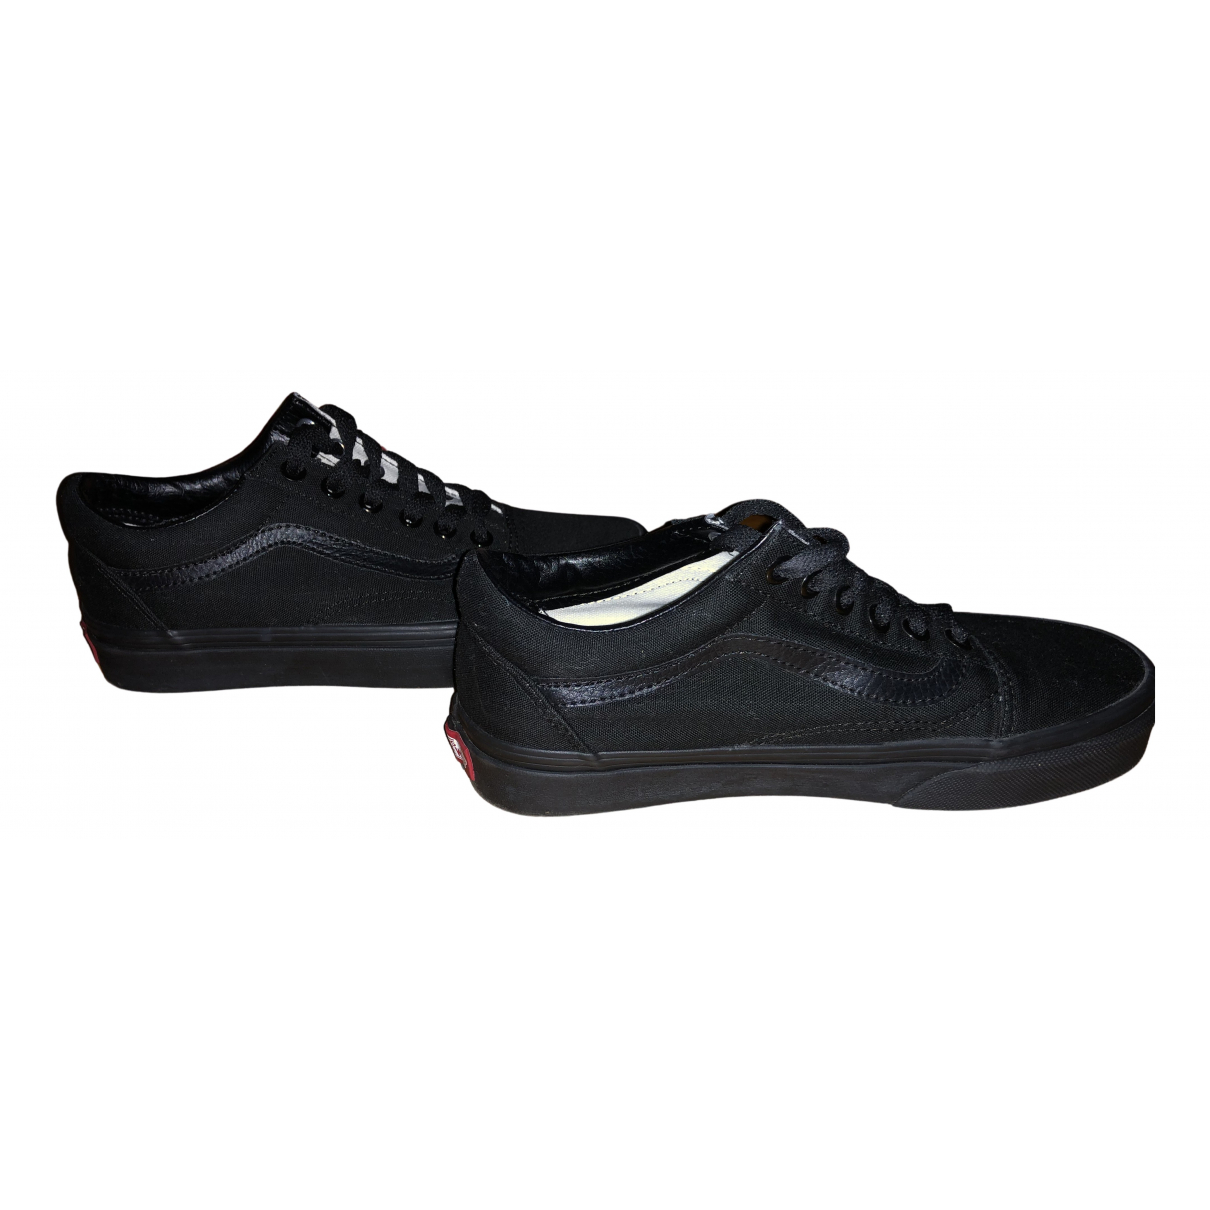 Vans N Black Cloth Trainers for Women 36 EU